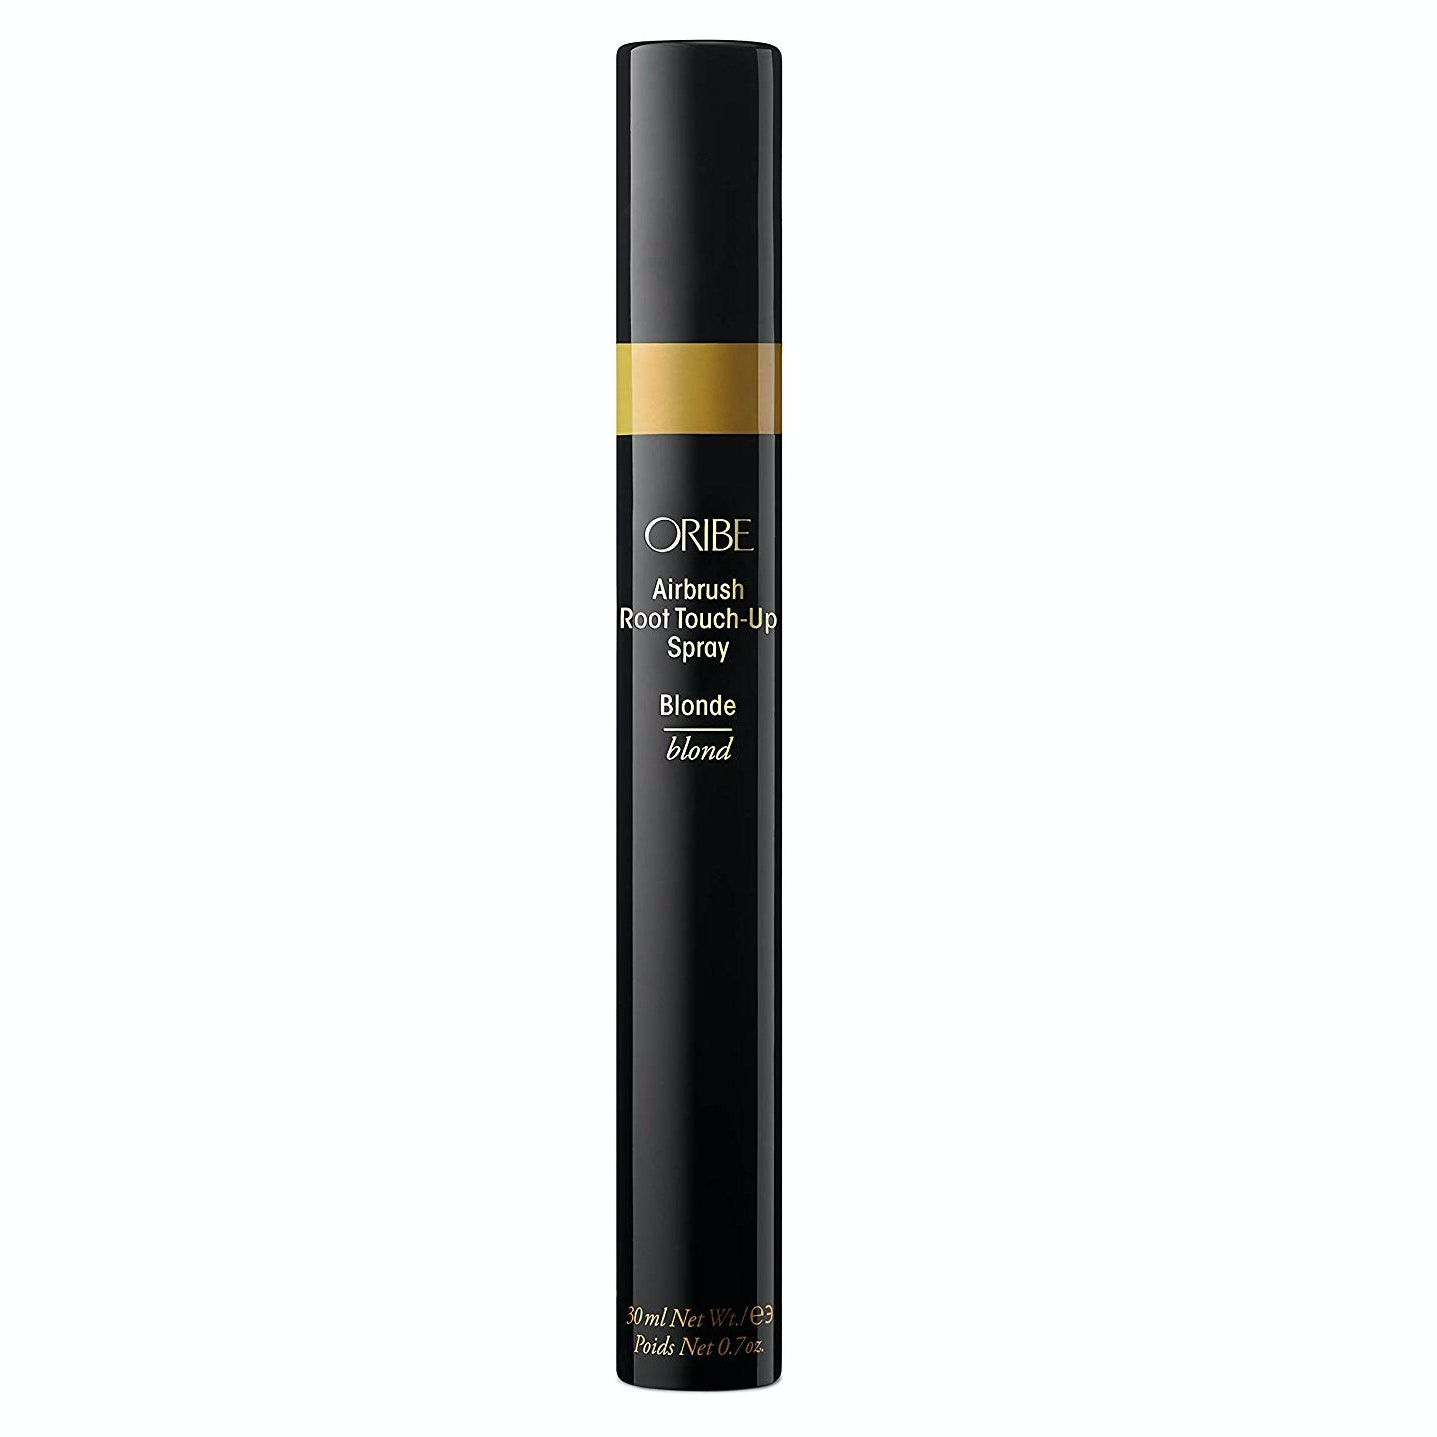 Oribe® Airbrush Root Touchup Spray